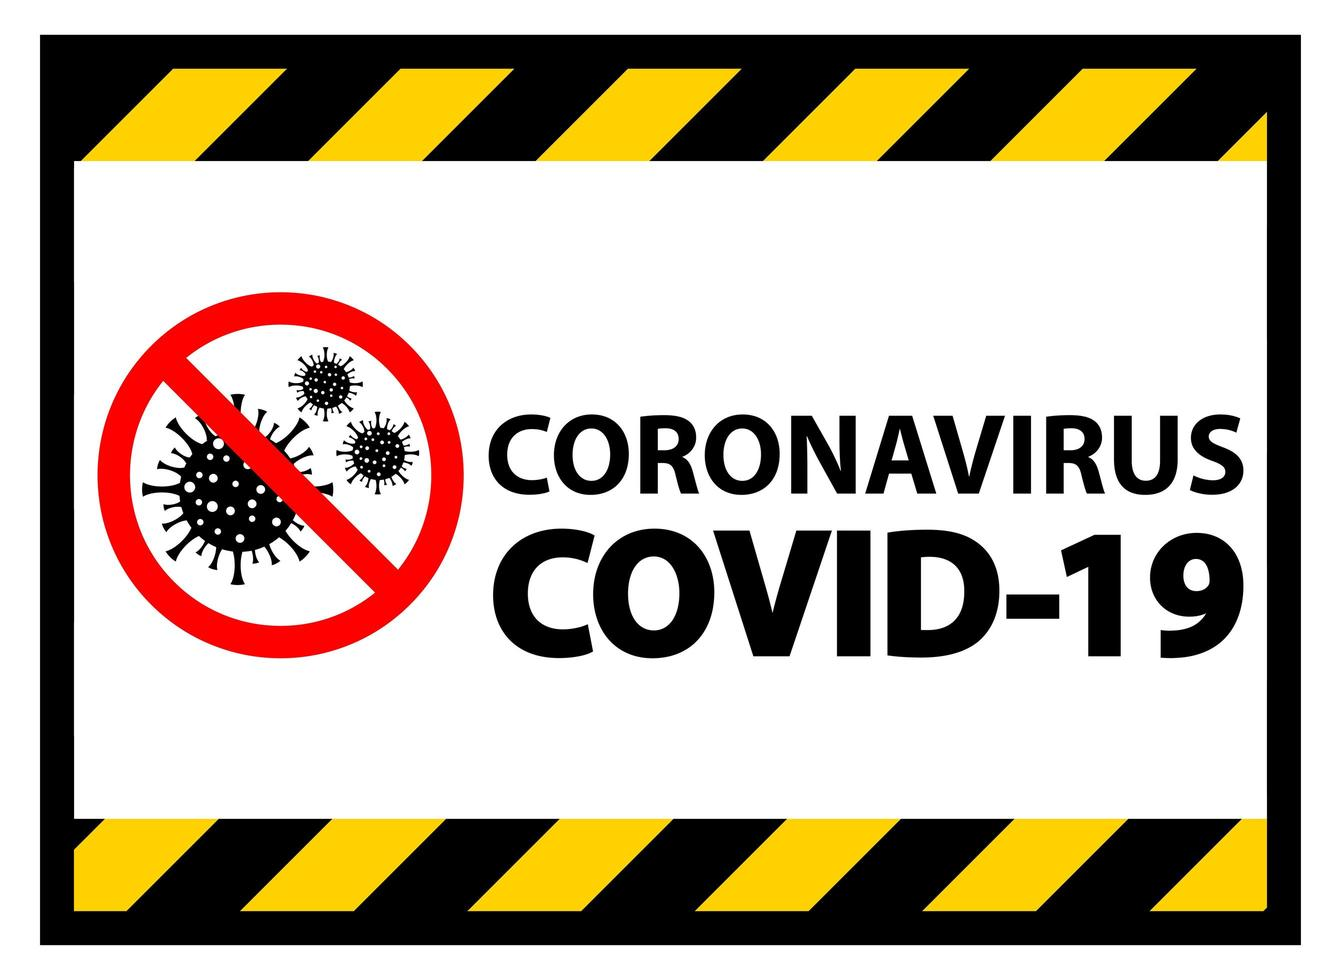 Coronavirus COVID-19 Warning Sign vector